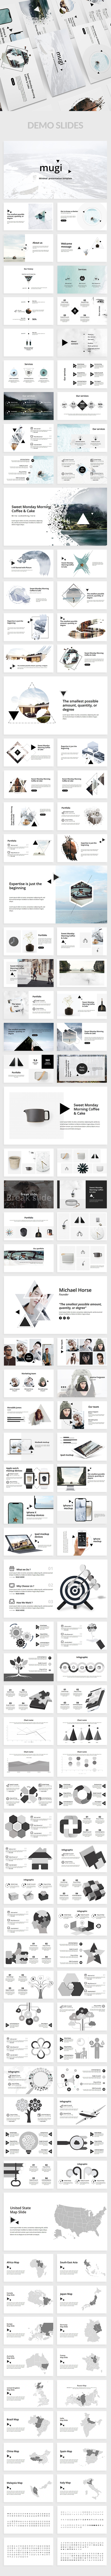 Mugi Minimal Google Slide Template - Google Slides Presentation Templates